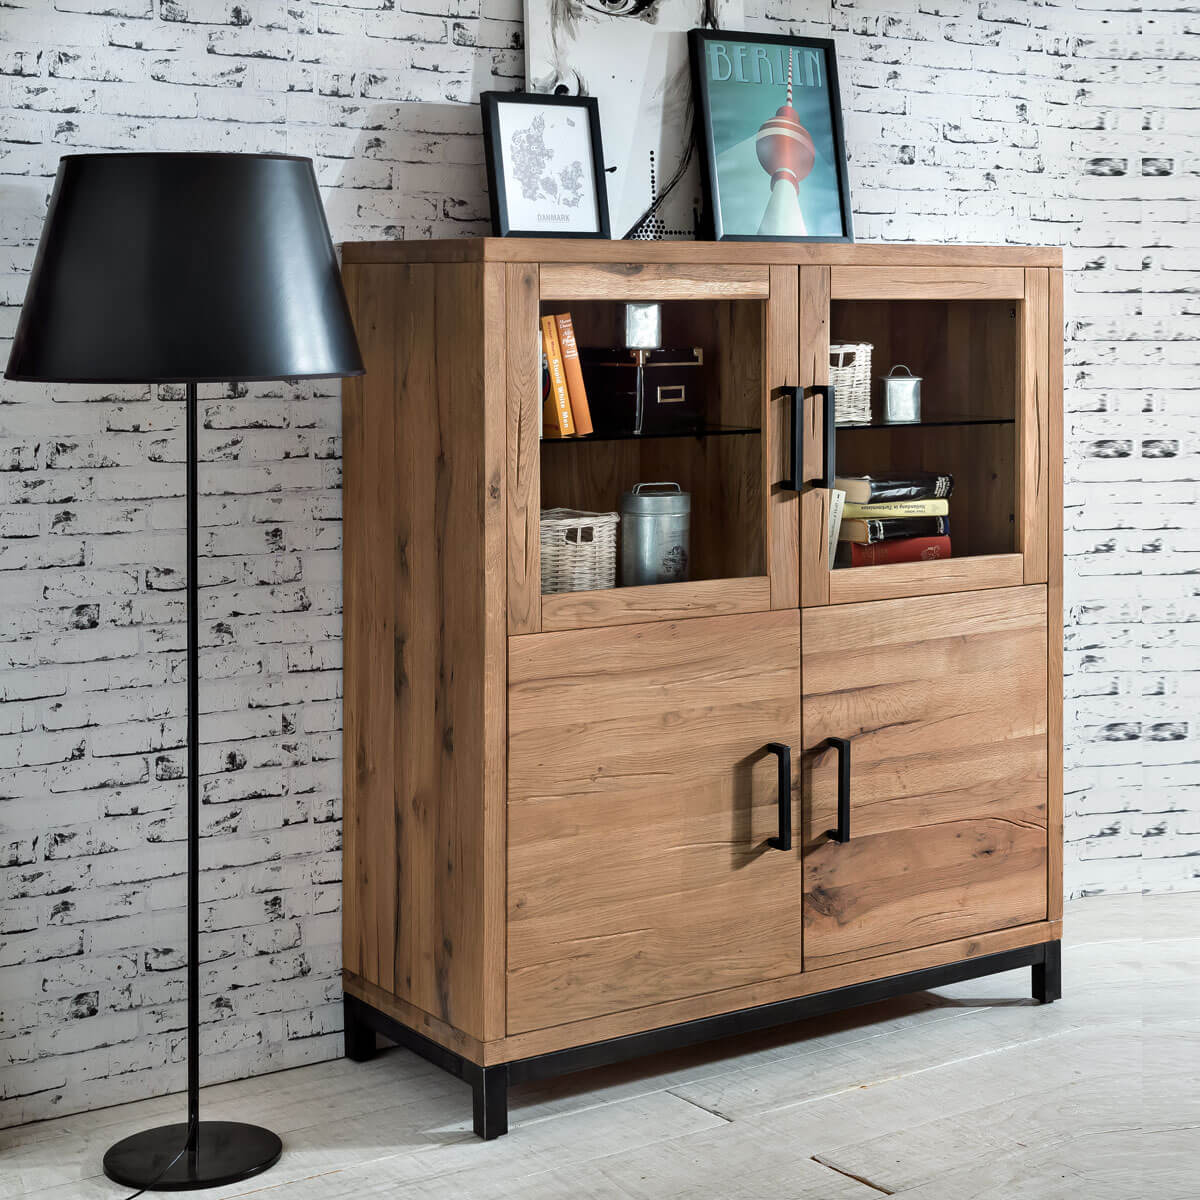 highboard bestano 120 x 50 x 145 cm kommode eiche massiv wildeiche massivholz ebay. Black Bedroom Furniture Sets. Home Design Ideas